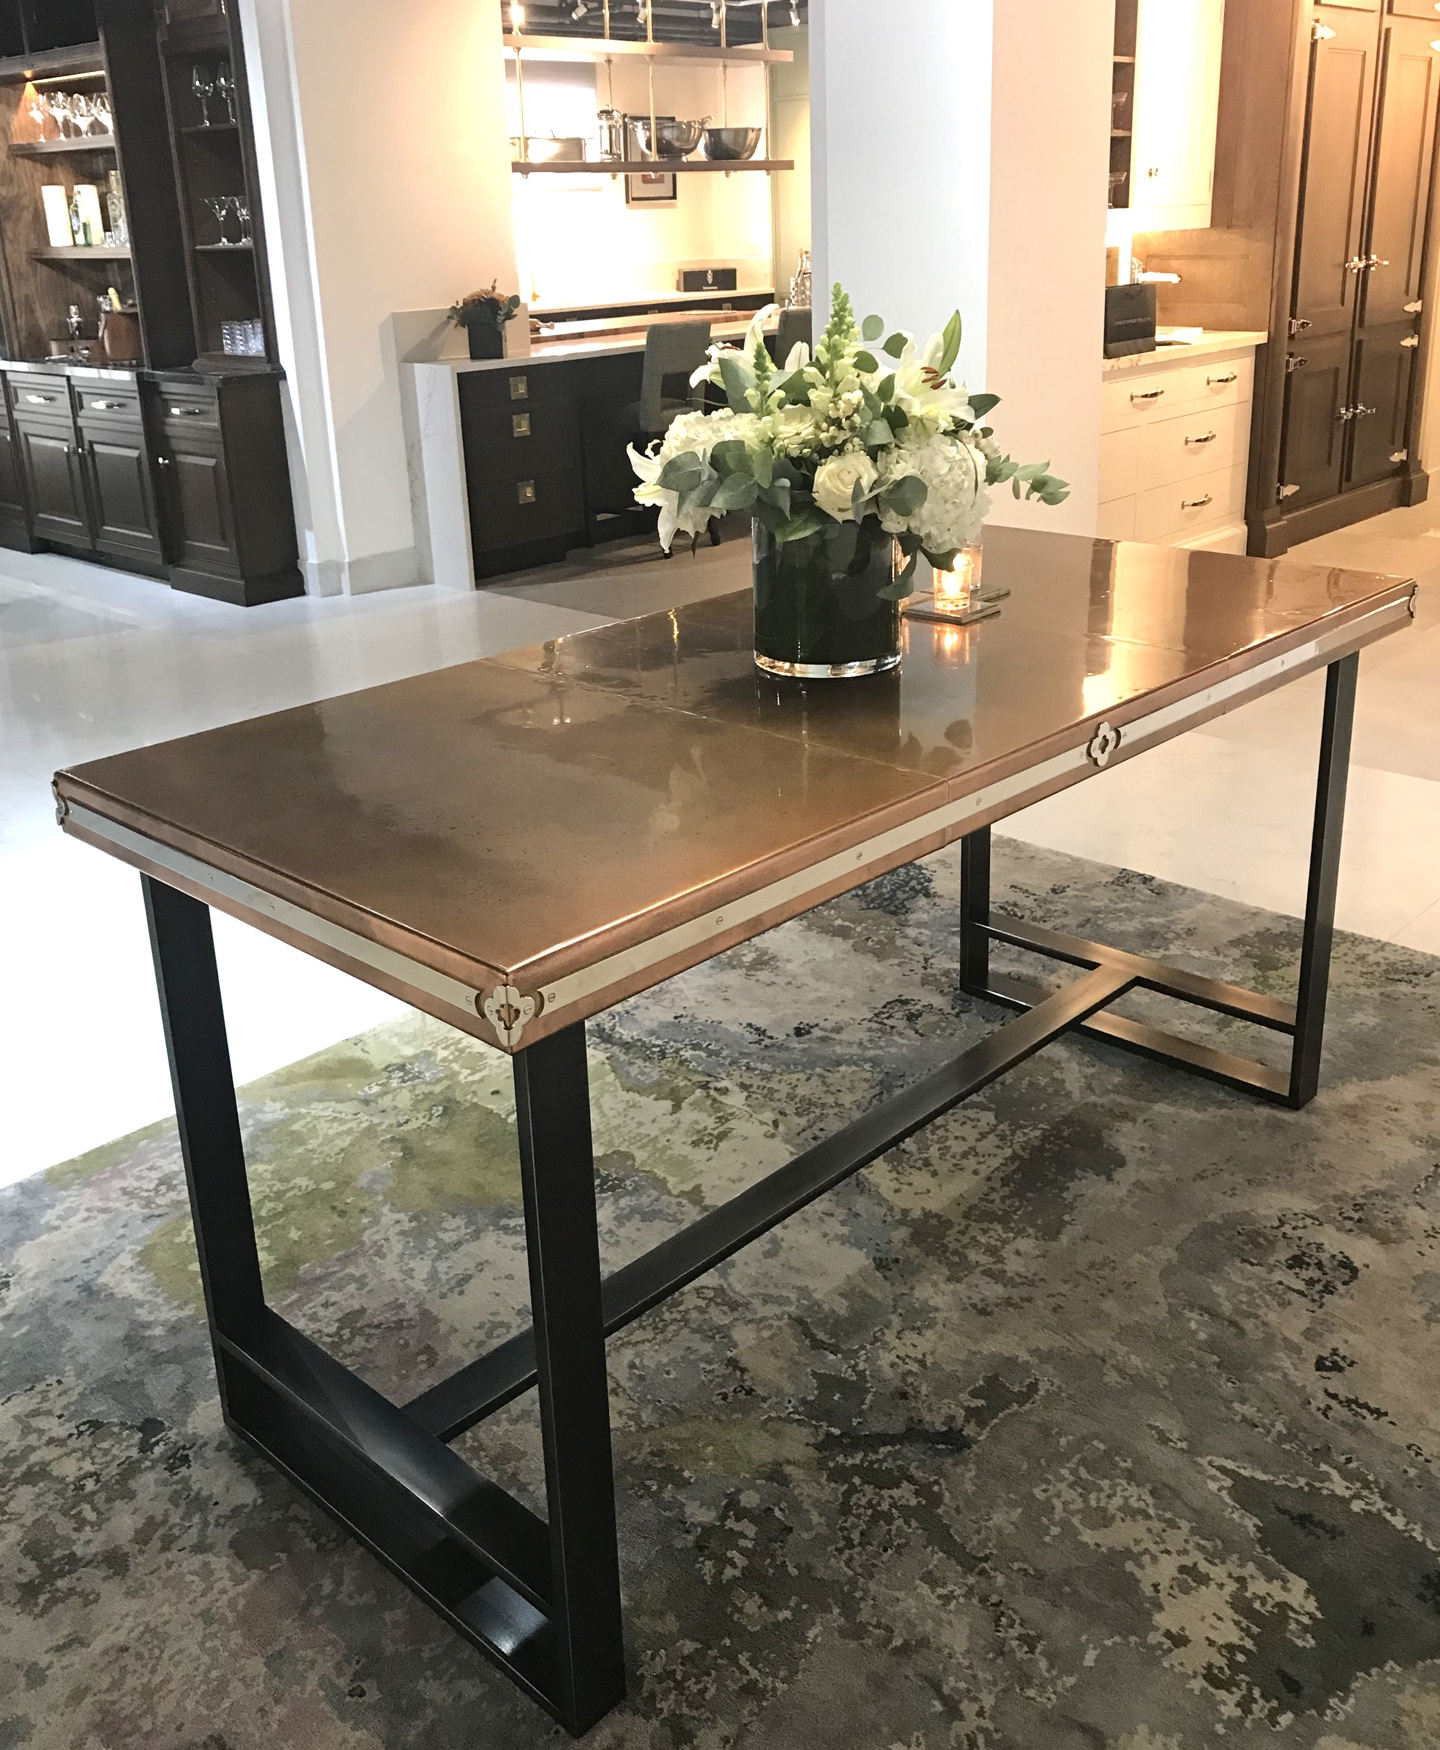 The dining table design brief was to produce a sleek and sharp u0027catwalku0027 style table; which would showcase many of our beautiful hand-crafted skills and ... & Antique Patinated Copper Dining Table - Andrew Nebbett Designs